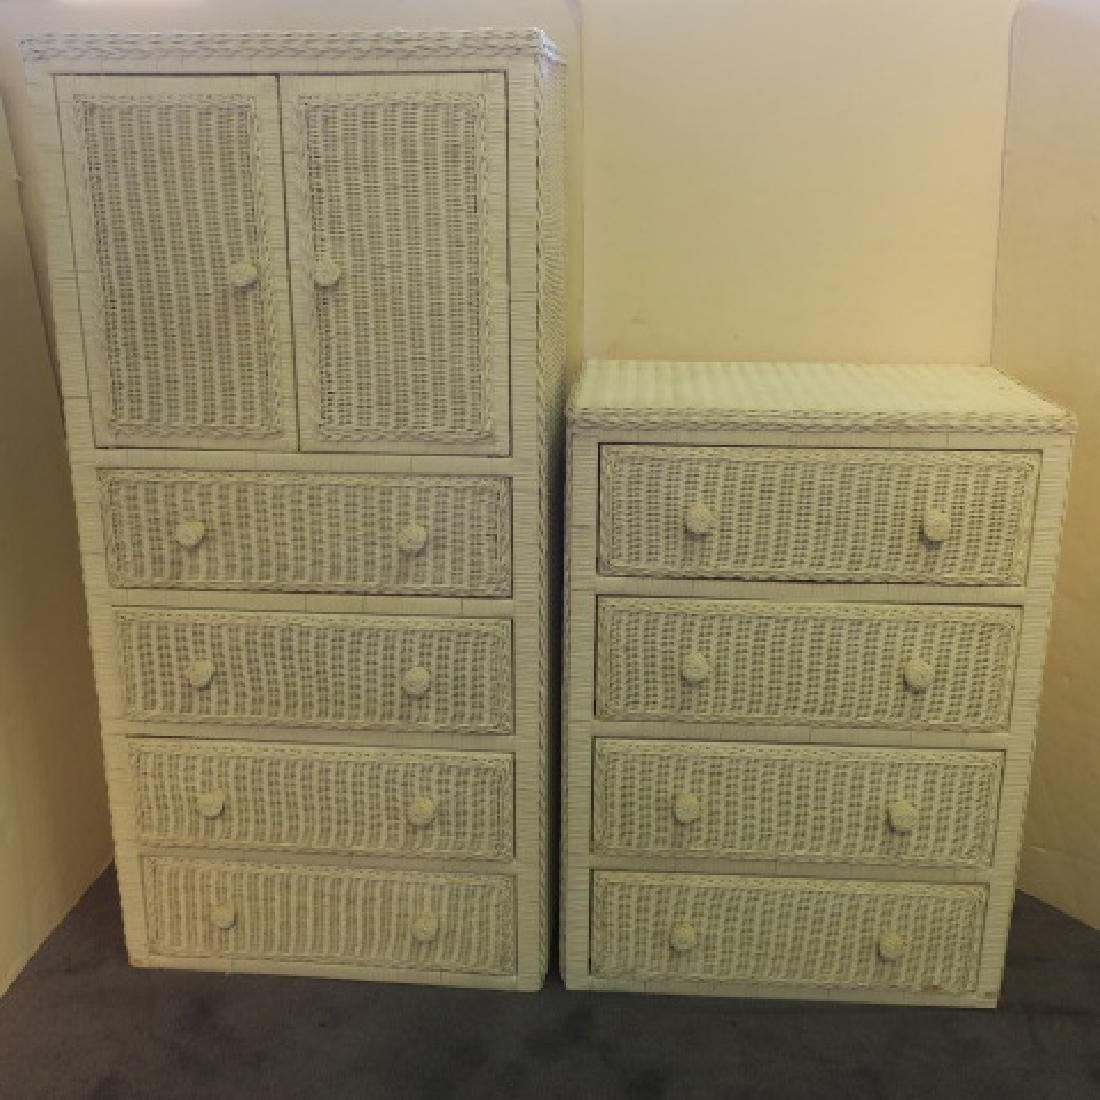 White Wicker Bachelor Chest and Four Drawer Dresser: